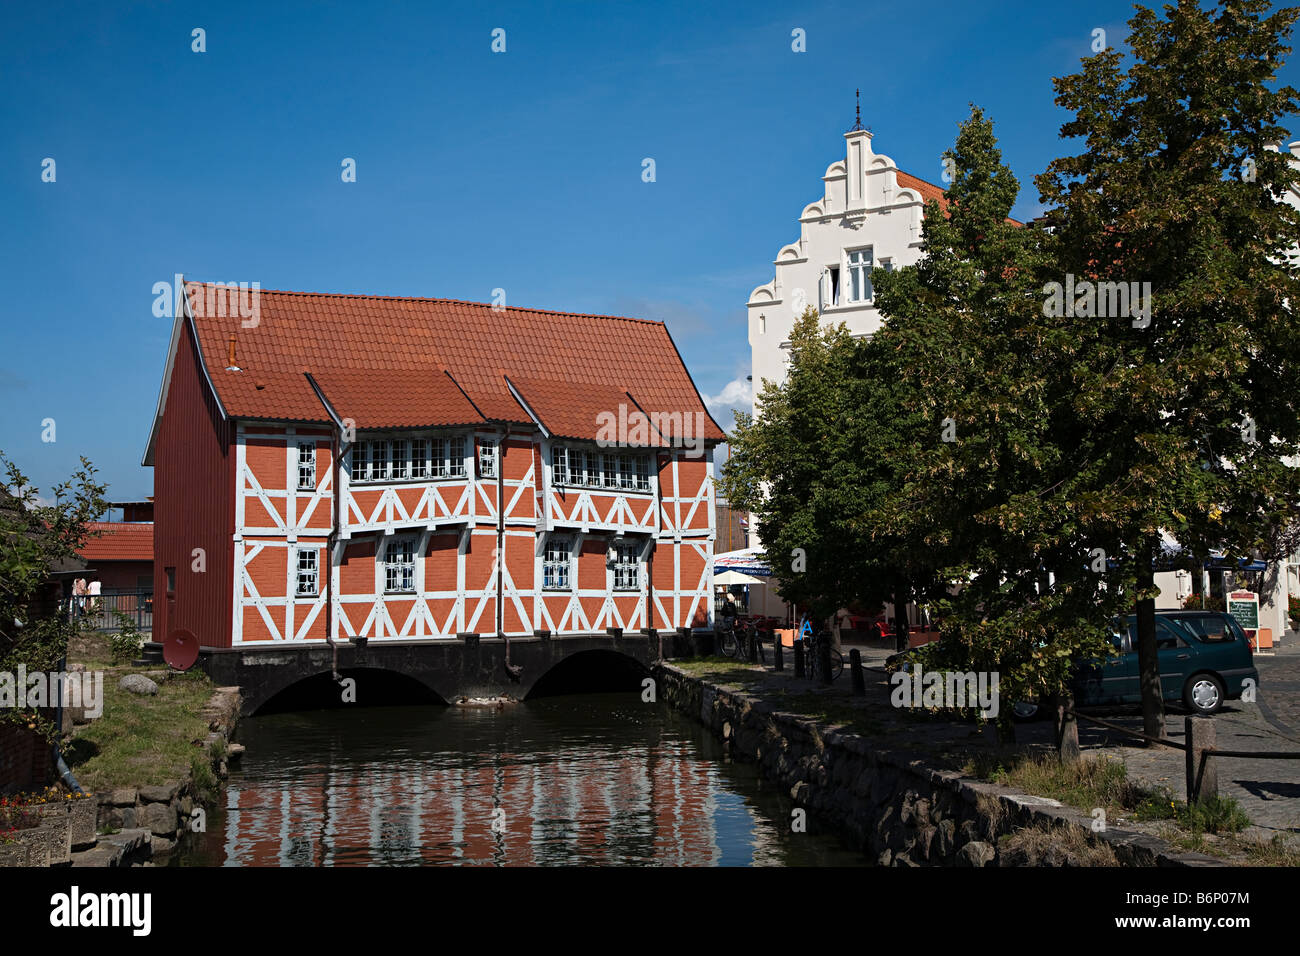 Old style timbered building spanning canal Wismar Germany Stock Photo